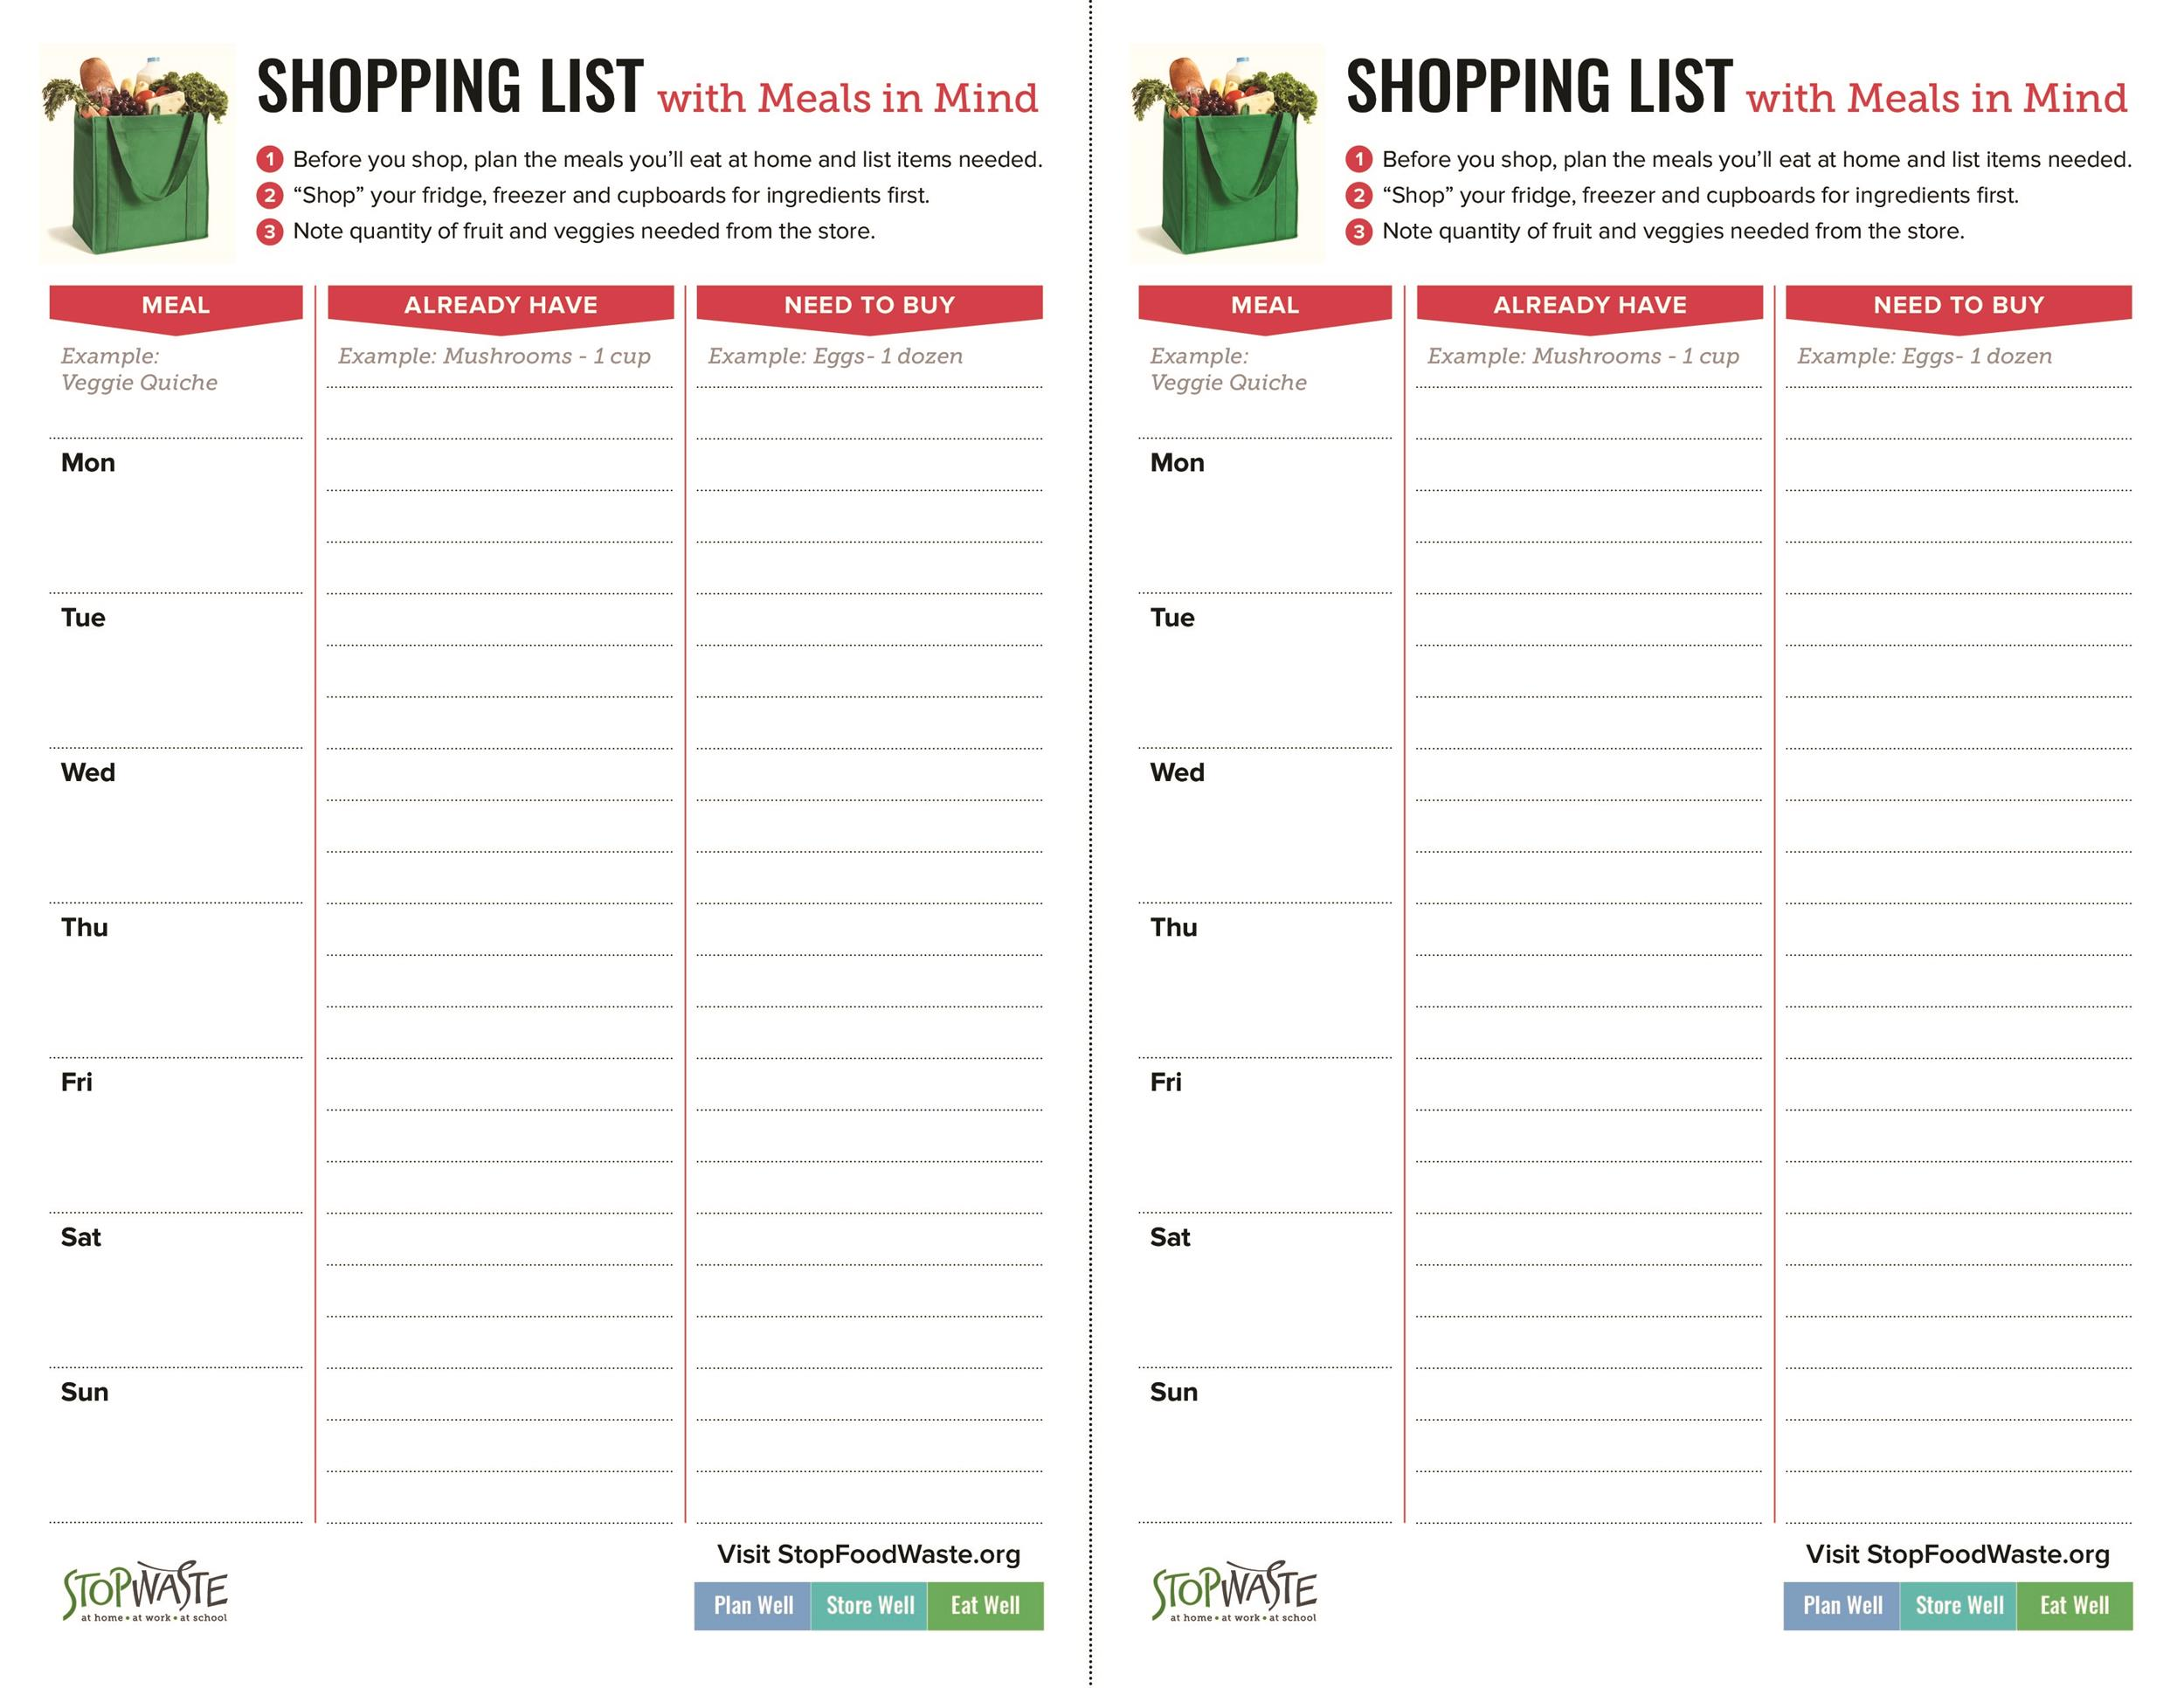 40+ Printable Grocery List Templates (Shopping List) - Template Lab - printable shopping list with categories